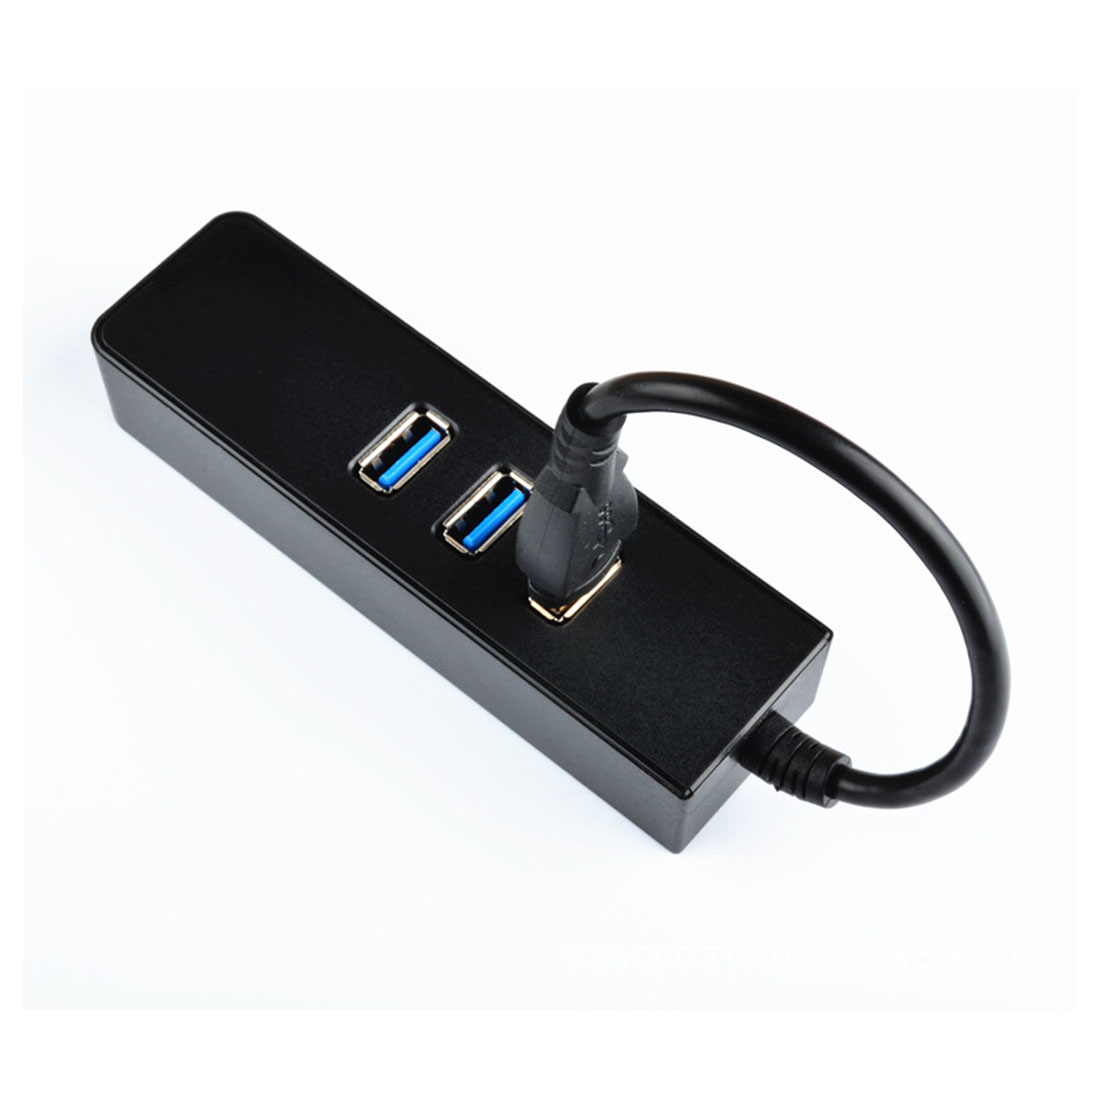 NOYOKERE USB3.0 practical high Speed 3 Ports Hub 10/100/1000 Mbps RJ45 LAN Wired Network Adapter Ether Net